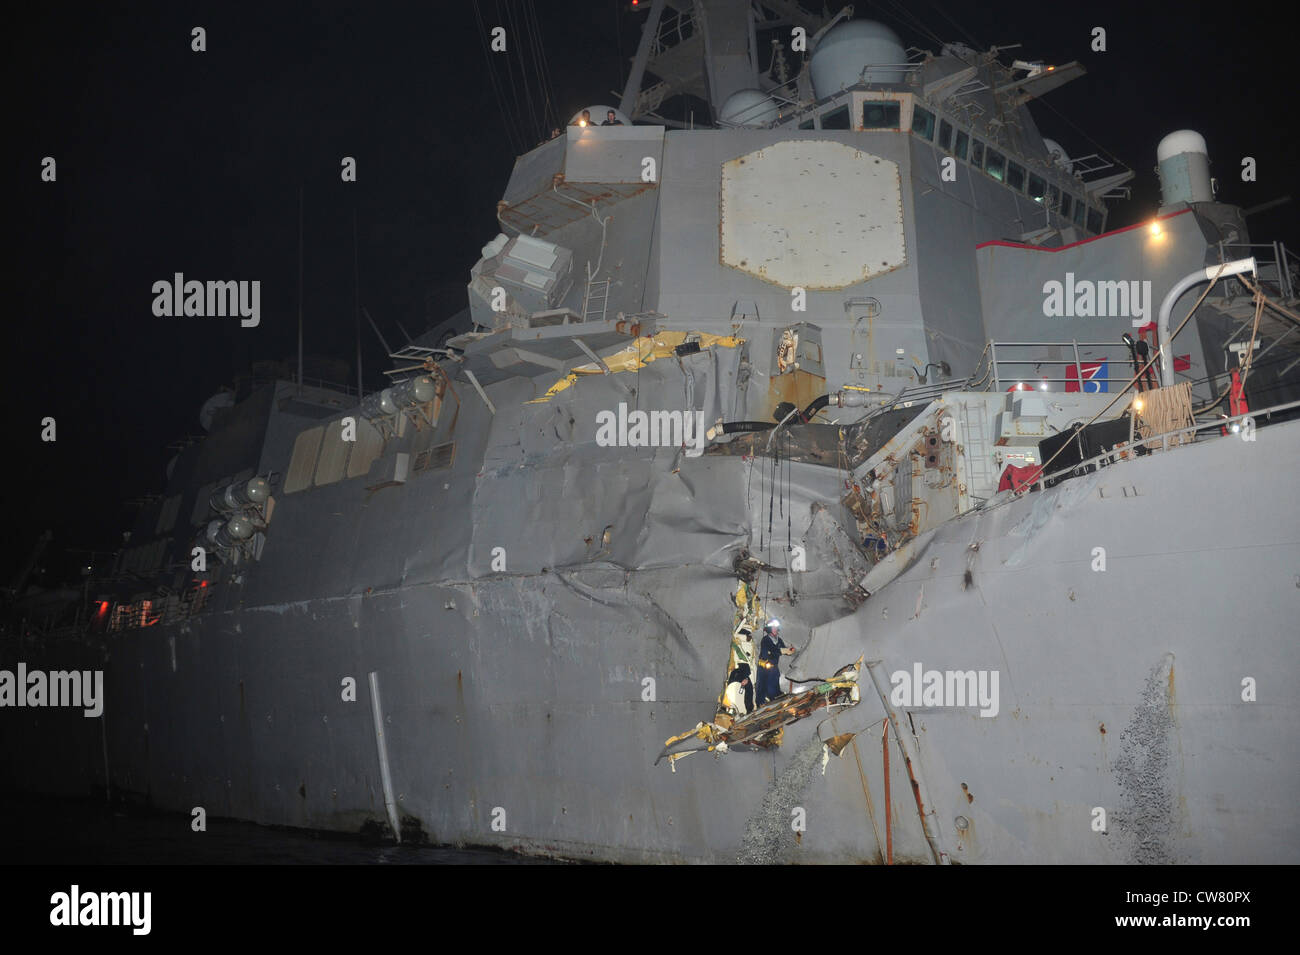 Guided-missile destroyer USS Porter (DDG 78) was damaged in a collision with the Japanese owned bulk oil tanker Stock Photo